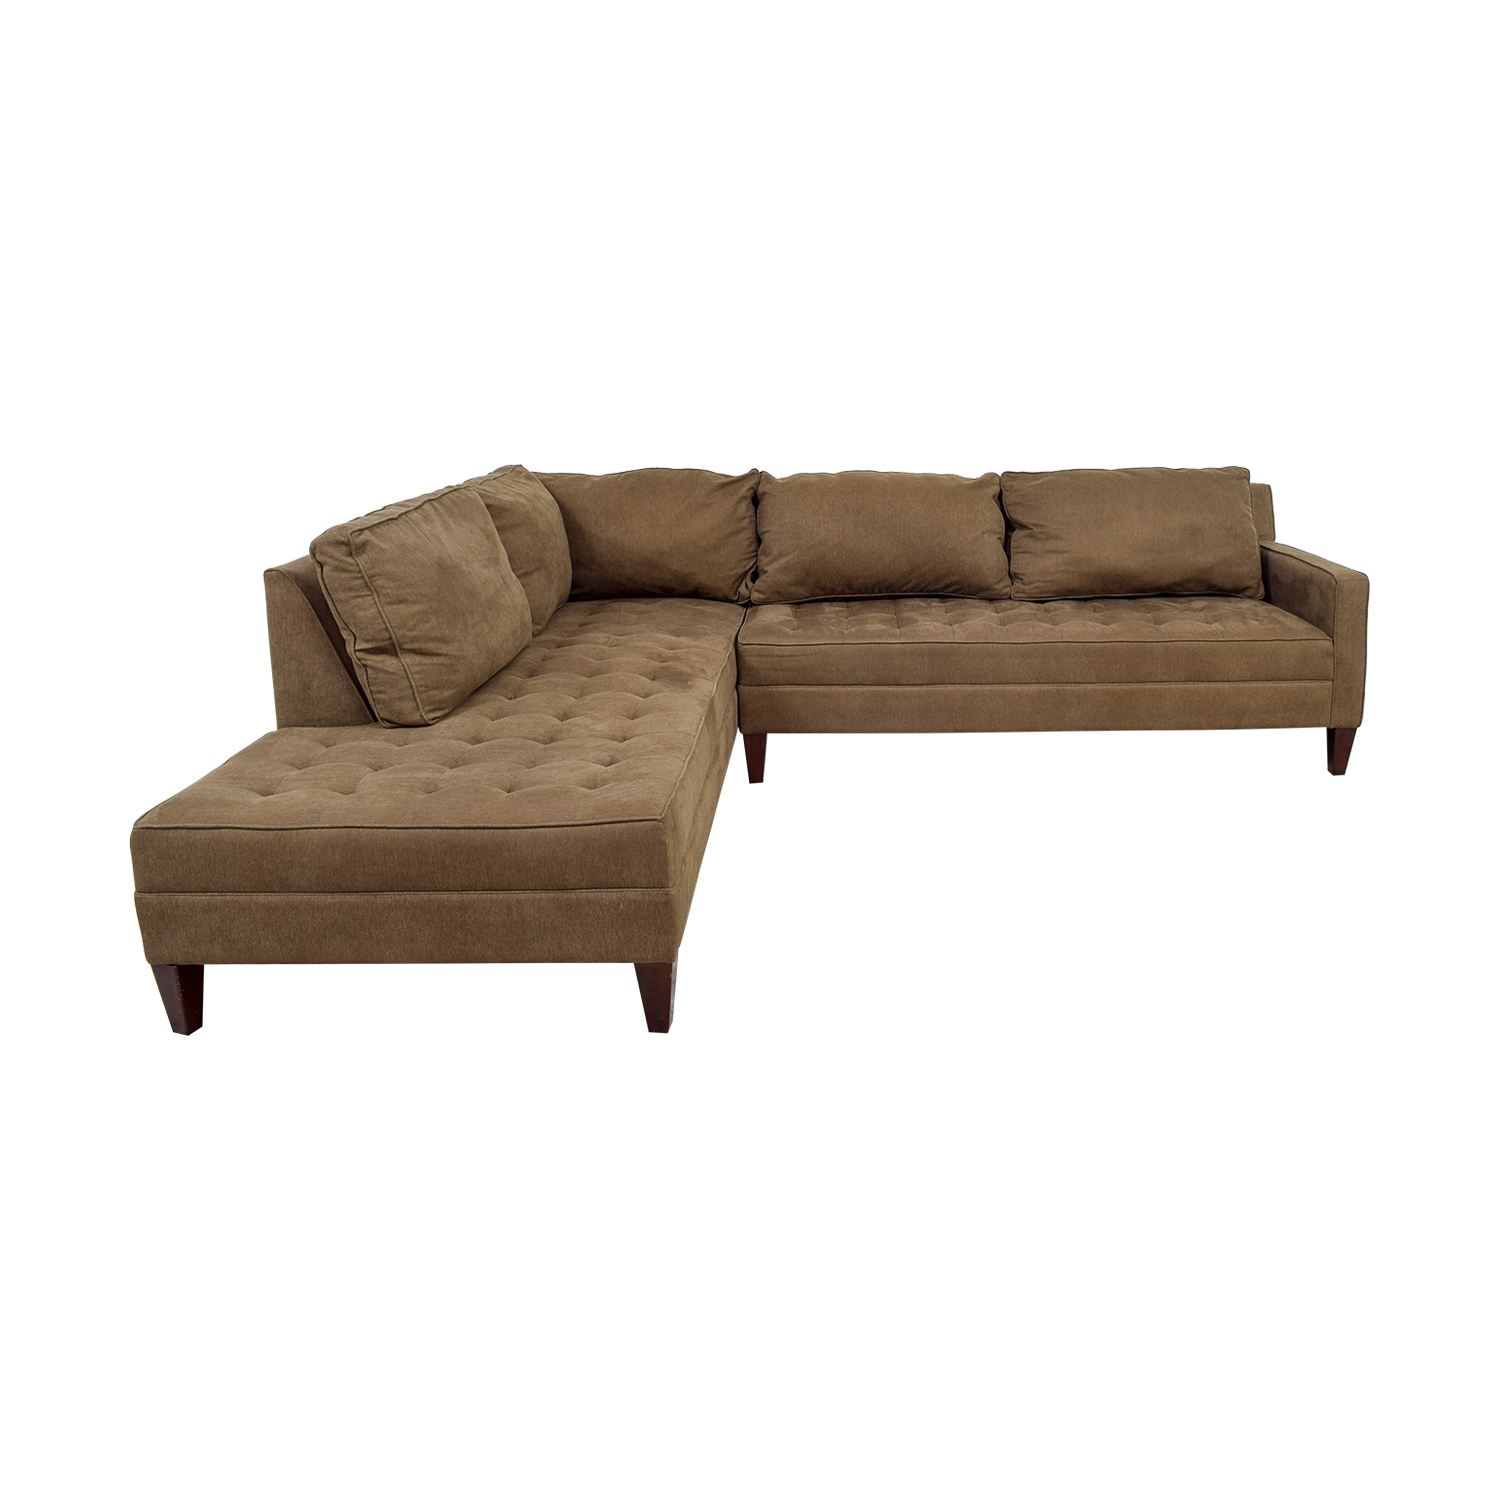 shop Z Gallery Brown Tufted Chaise L-Shaped Sectional Z Gallery